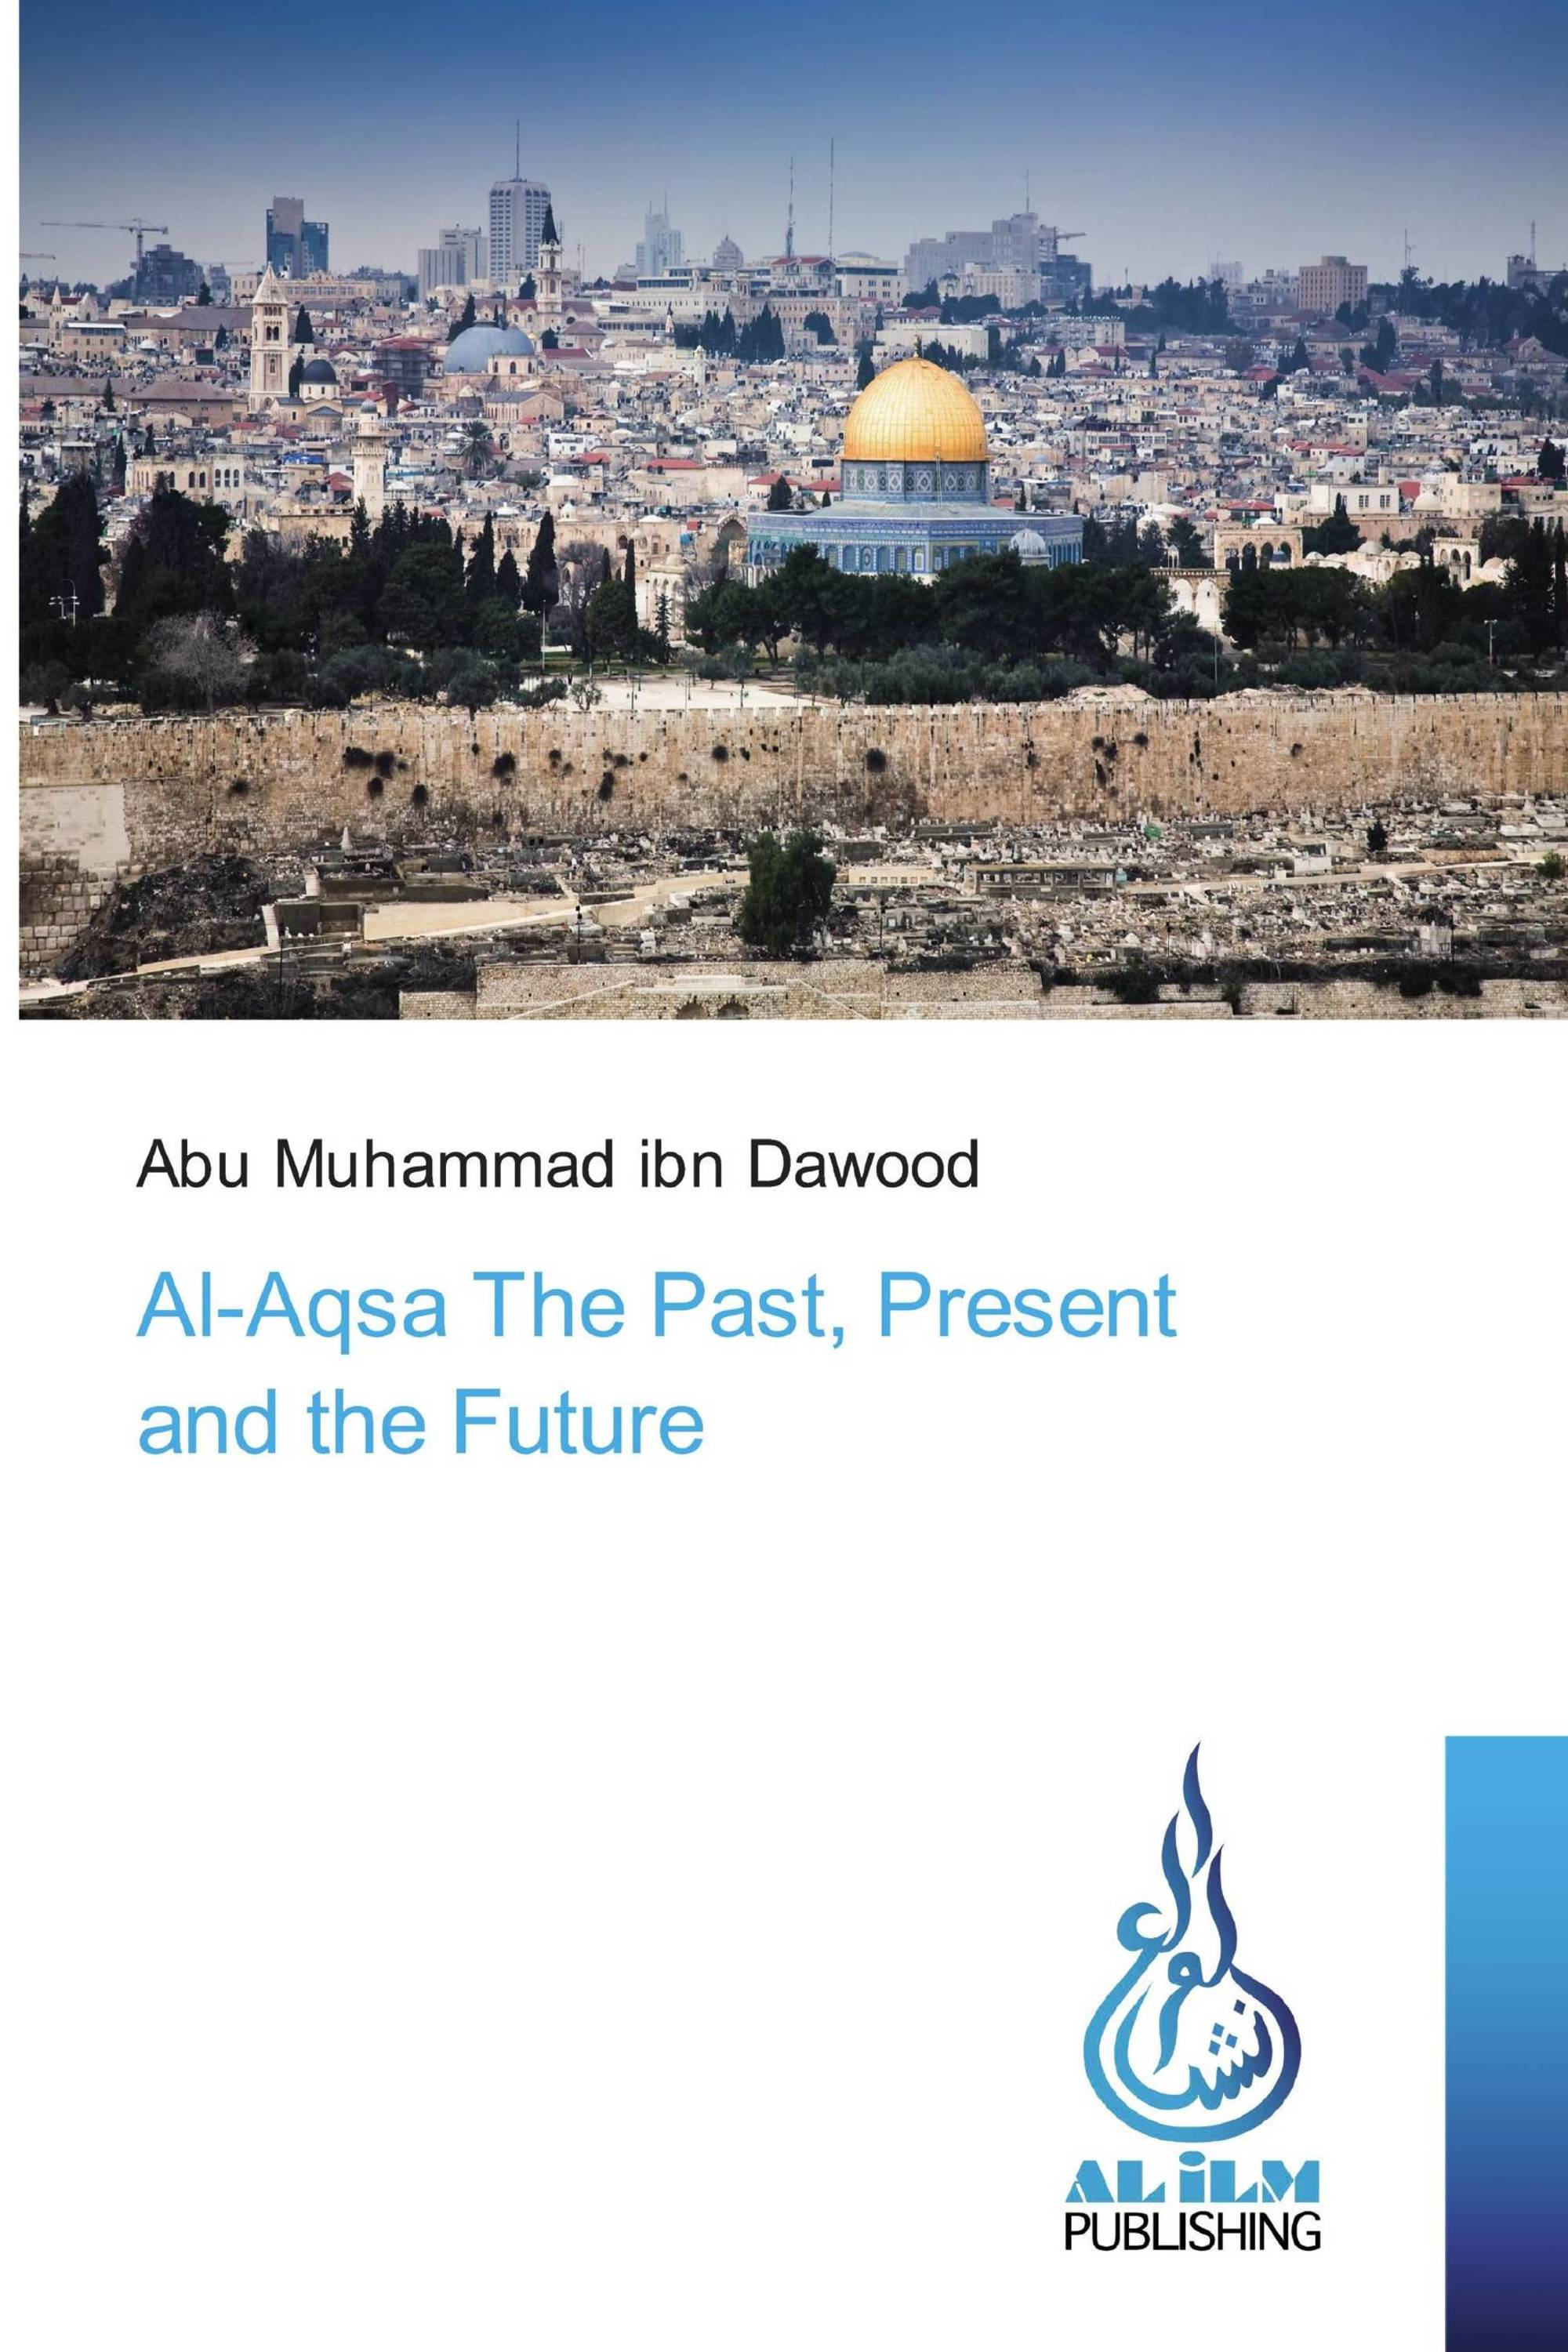 Al-Aqsa The Past, Present and the Future